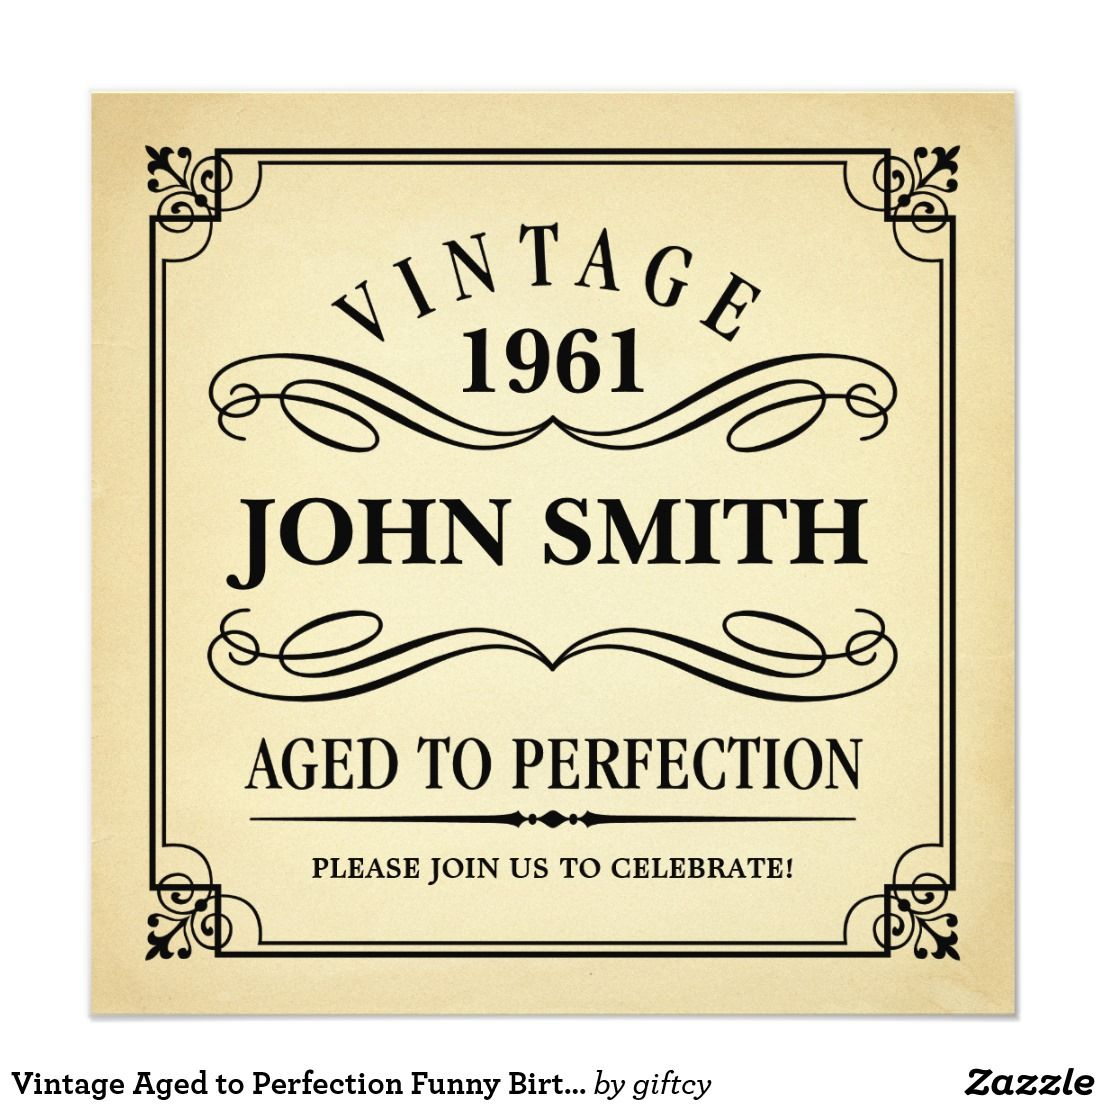 Vintage Aged To Perfection Funny Birthday Invite Zazzle Com Vintage Birthday Parties Vintage Birthday Invitations Funny Birthday Invitations